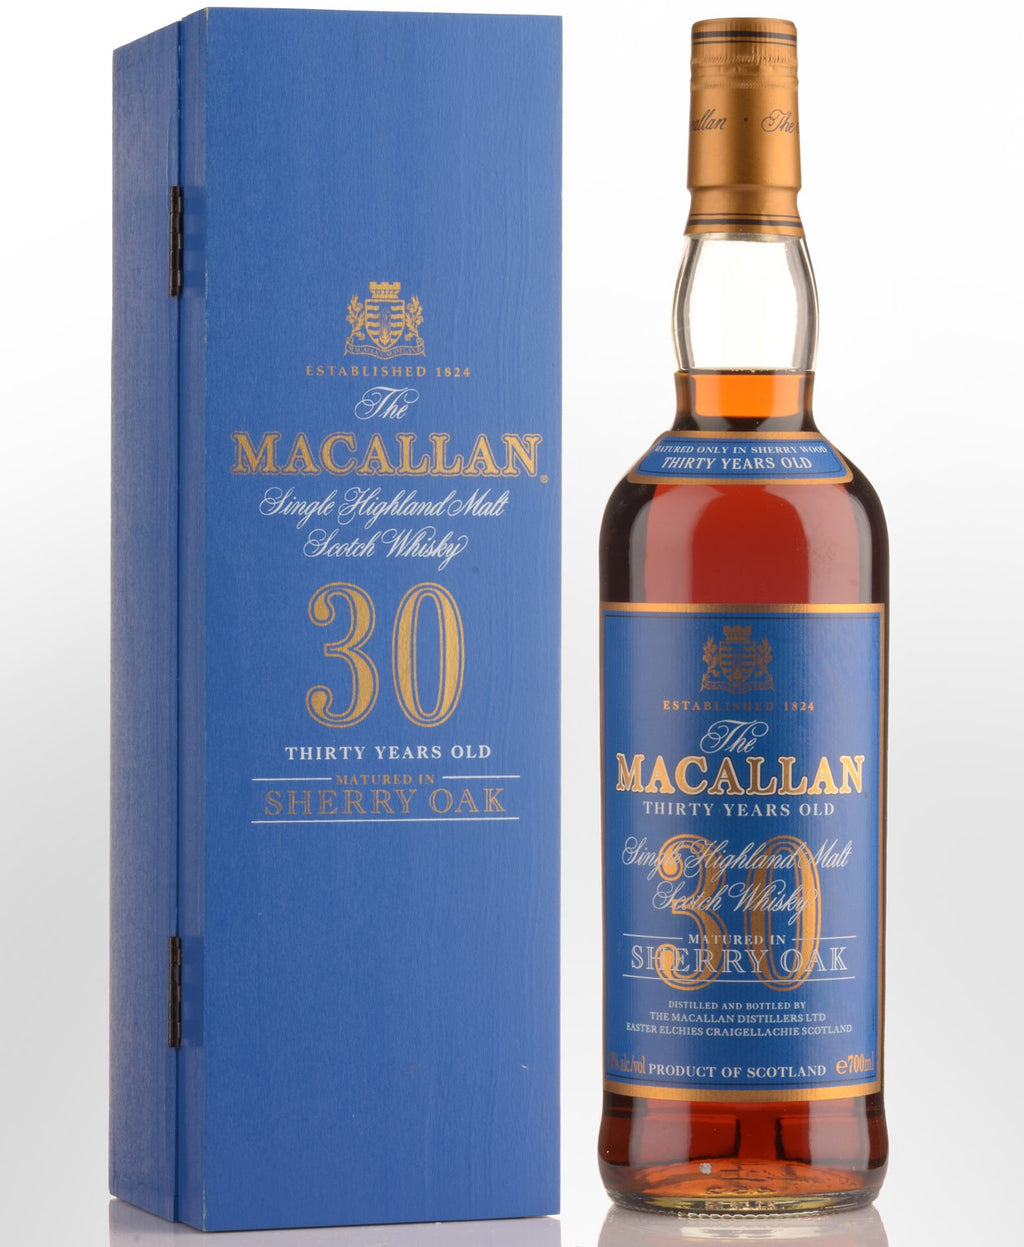 The Macallan 30 Year Old Sherry Oak Cask Single Malt Whisky, Scotland